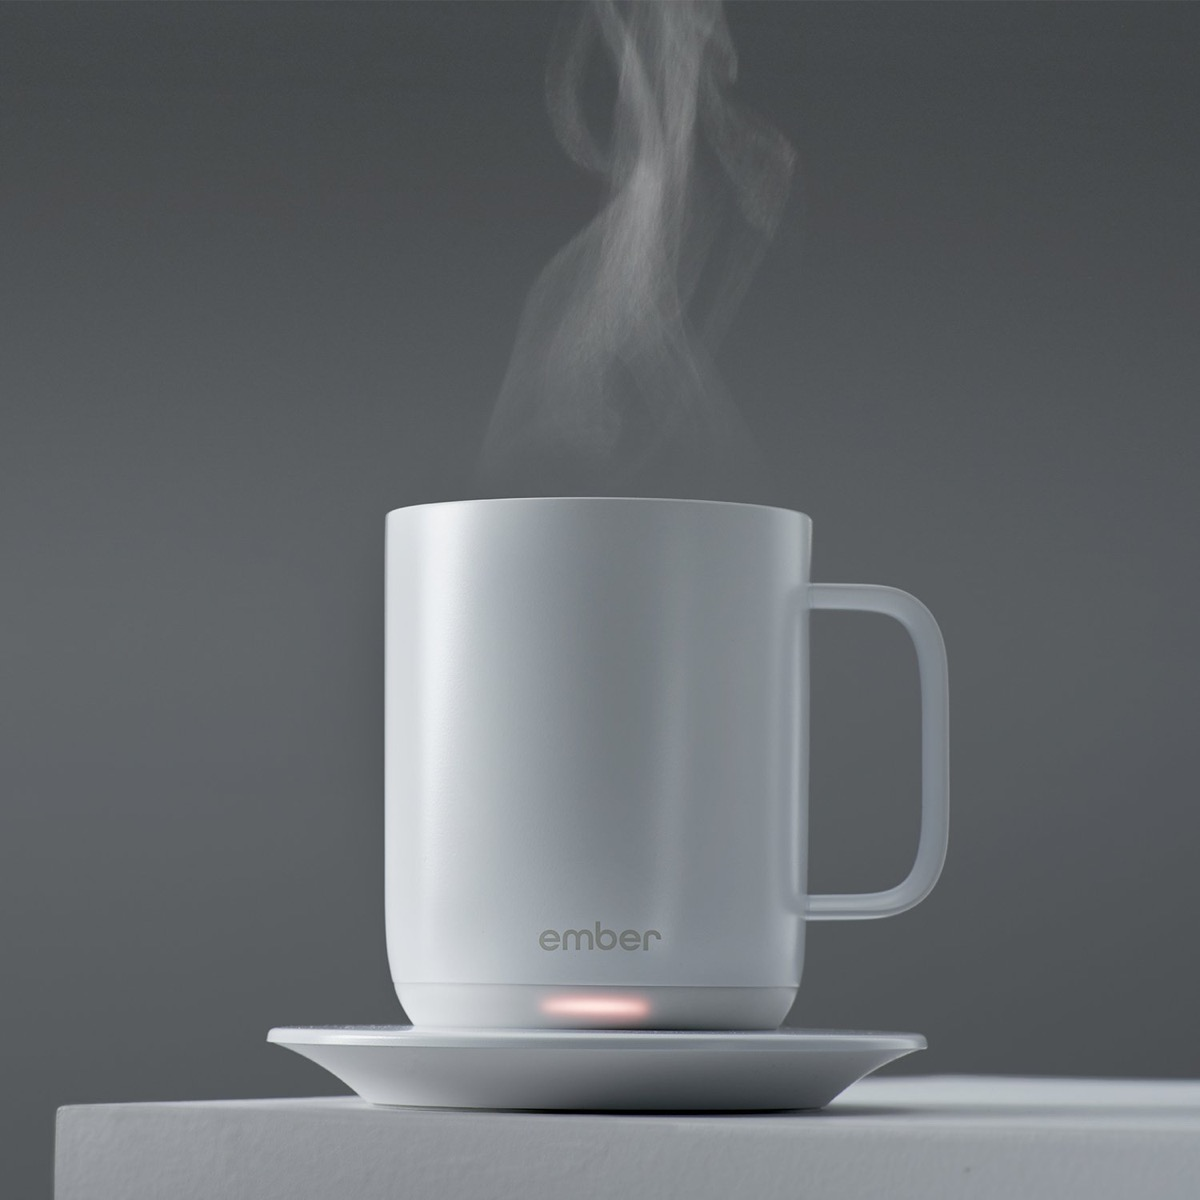 Cool Product Alert: A Smart Tea/Coffee Mug